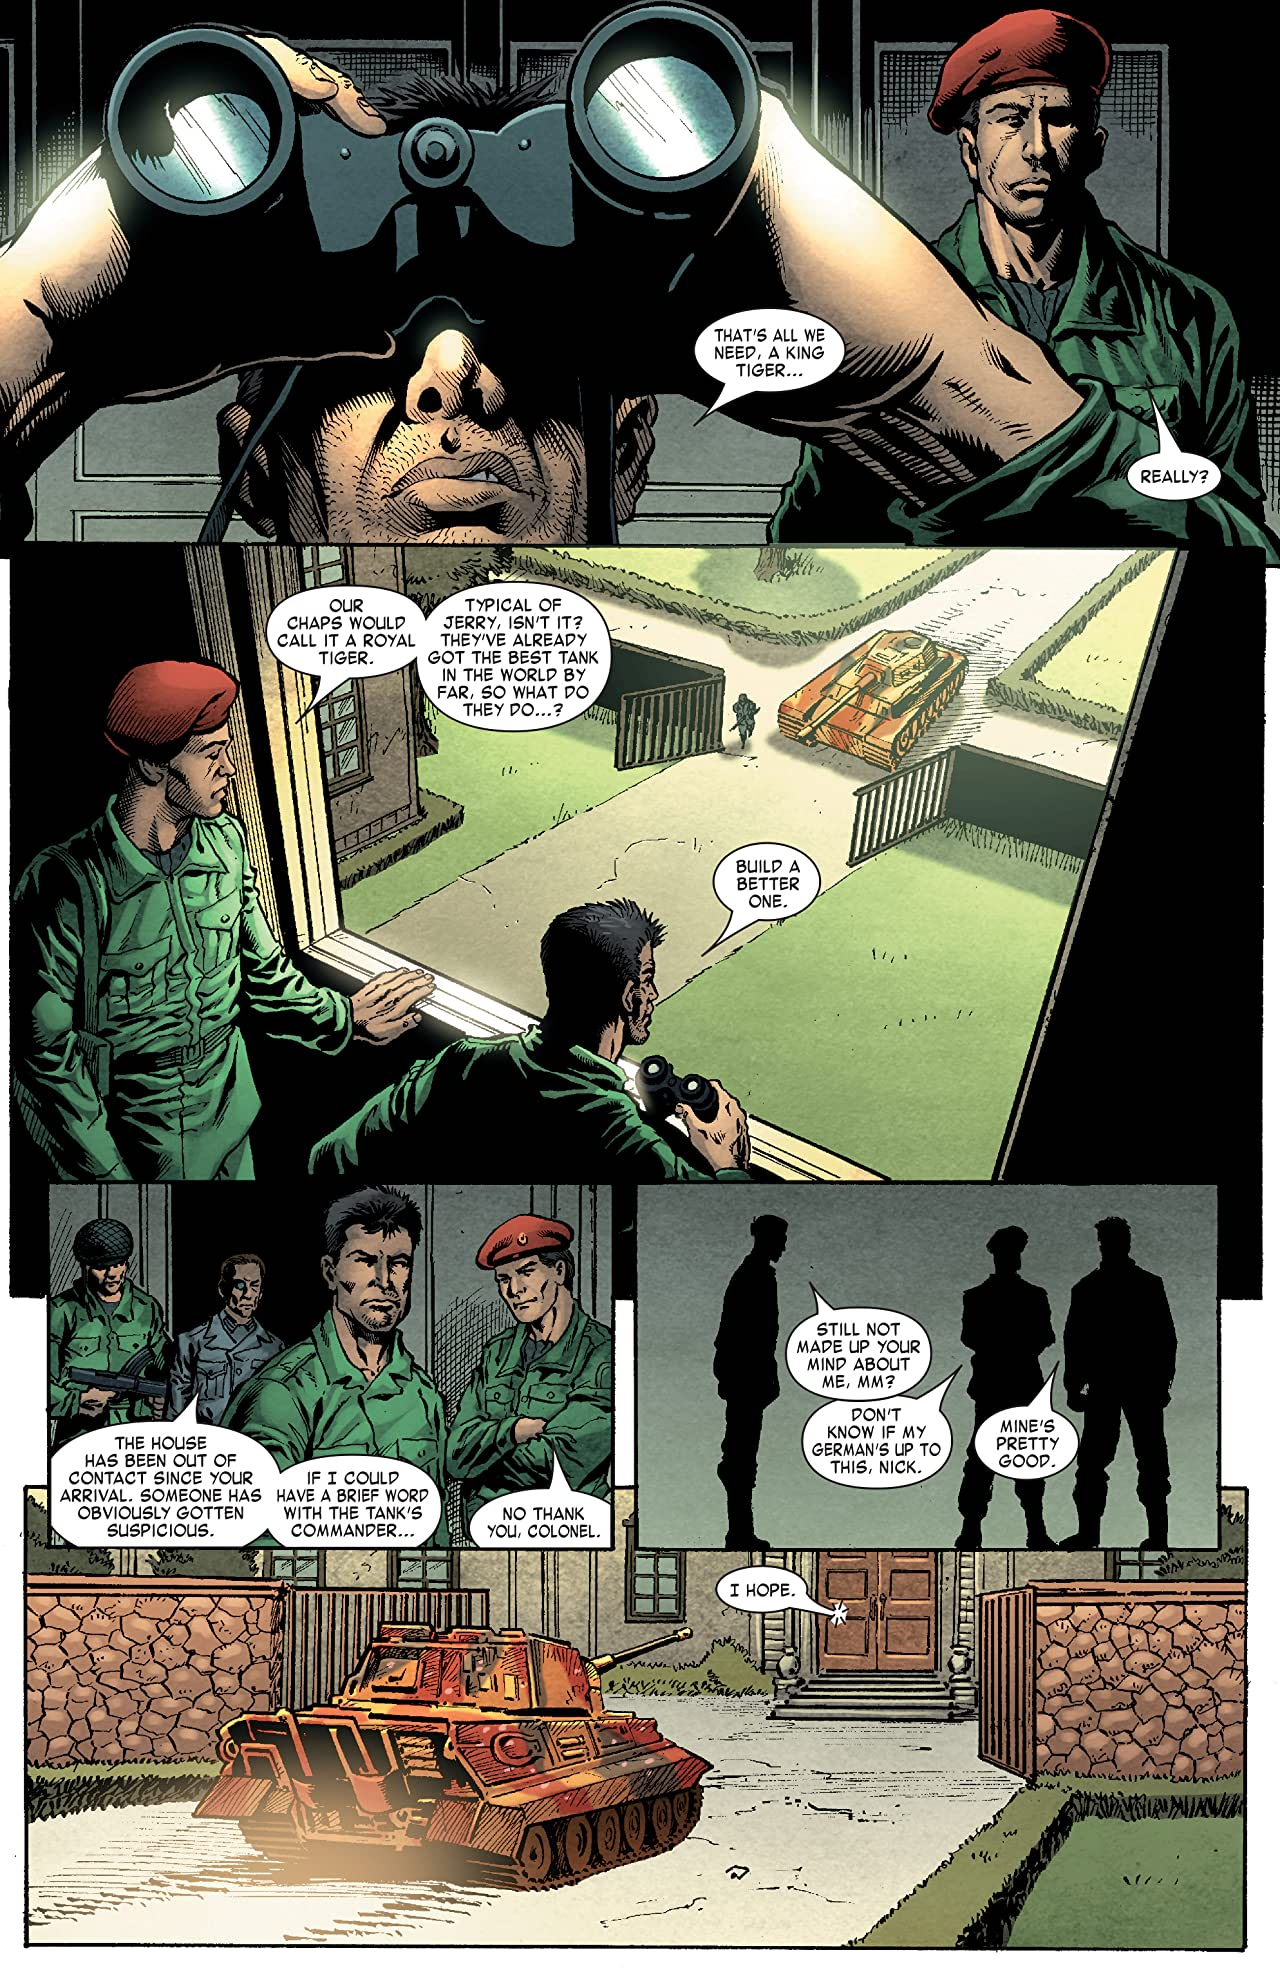 Fury Peacemaker (2006) #5 (of 6)